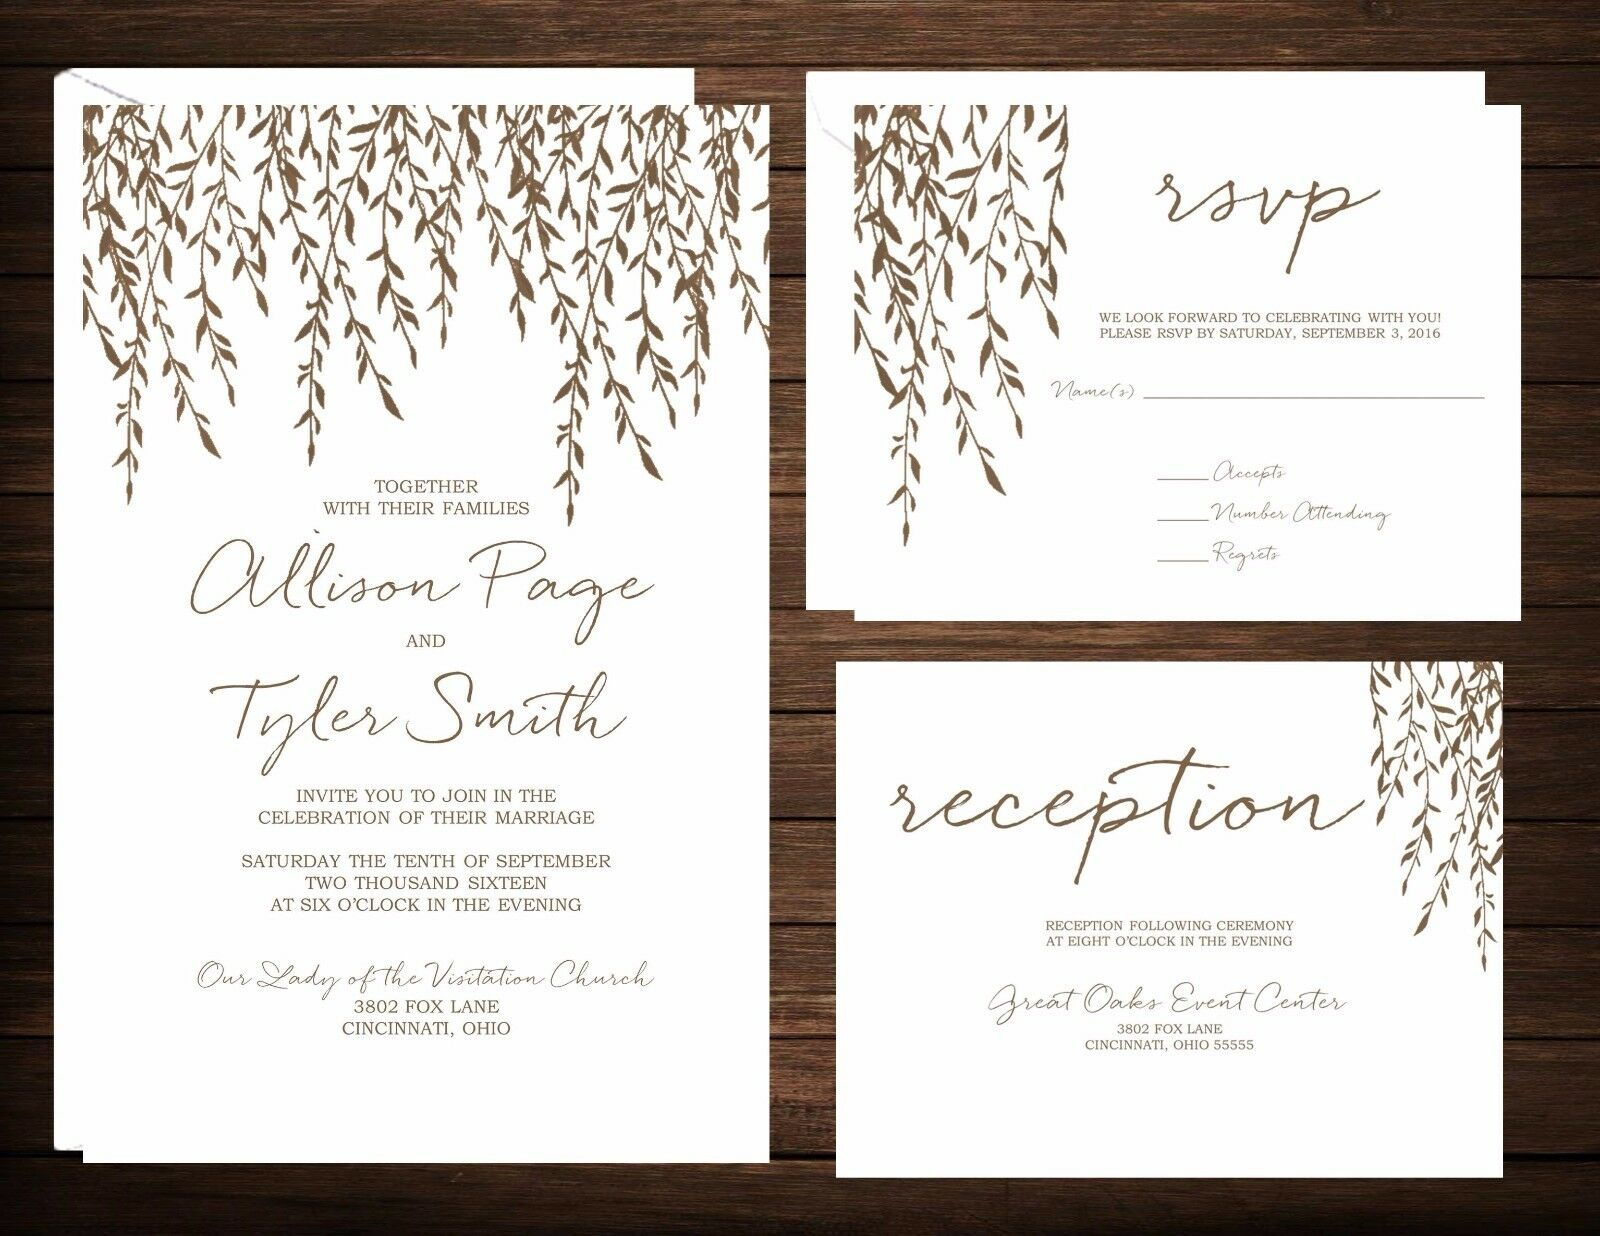 Wedding Invitations Weeping Willow 50 Invitations and RSVP Cards